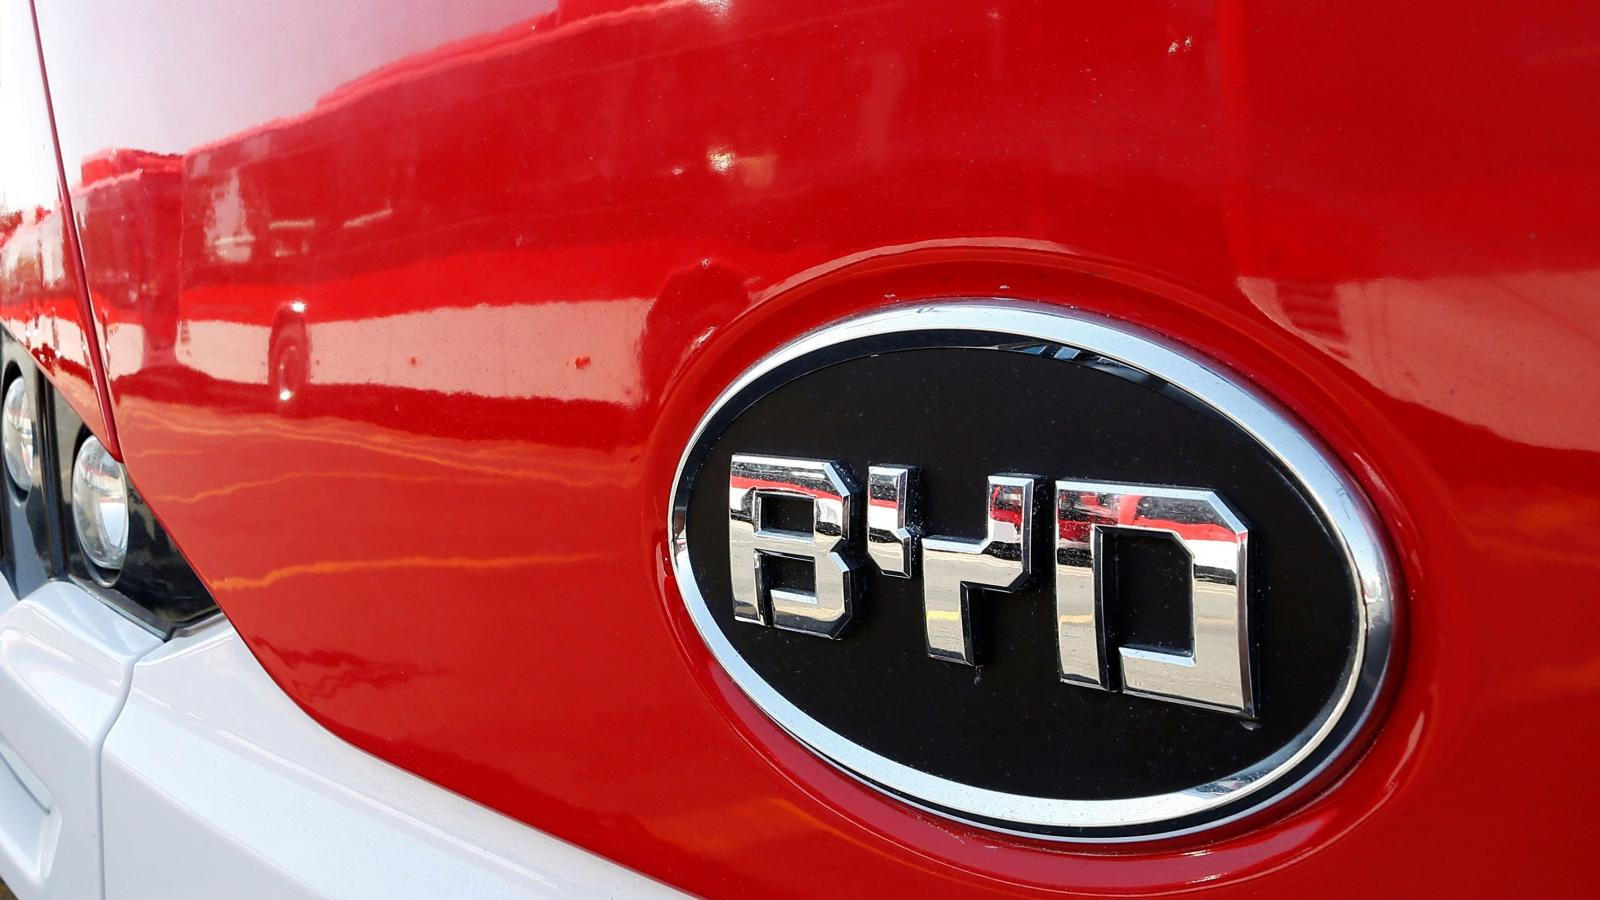 How much financial help does China give EV maker BYD? — Quartz